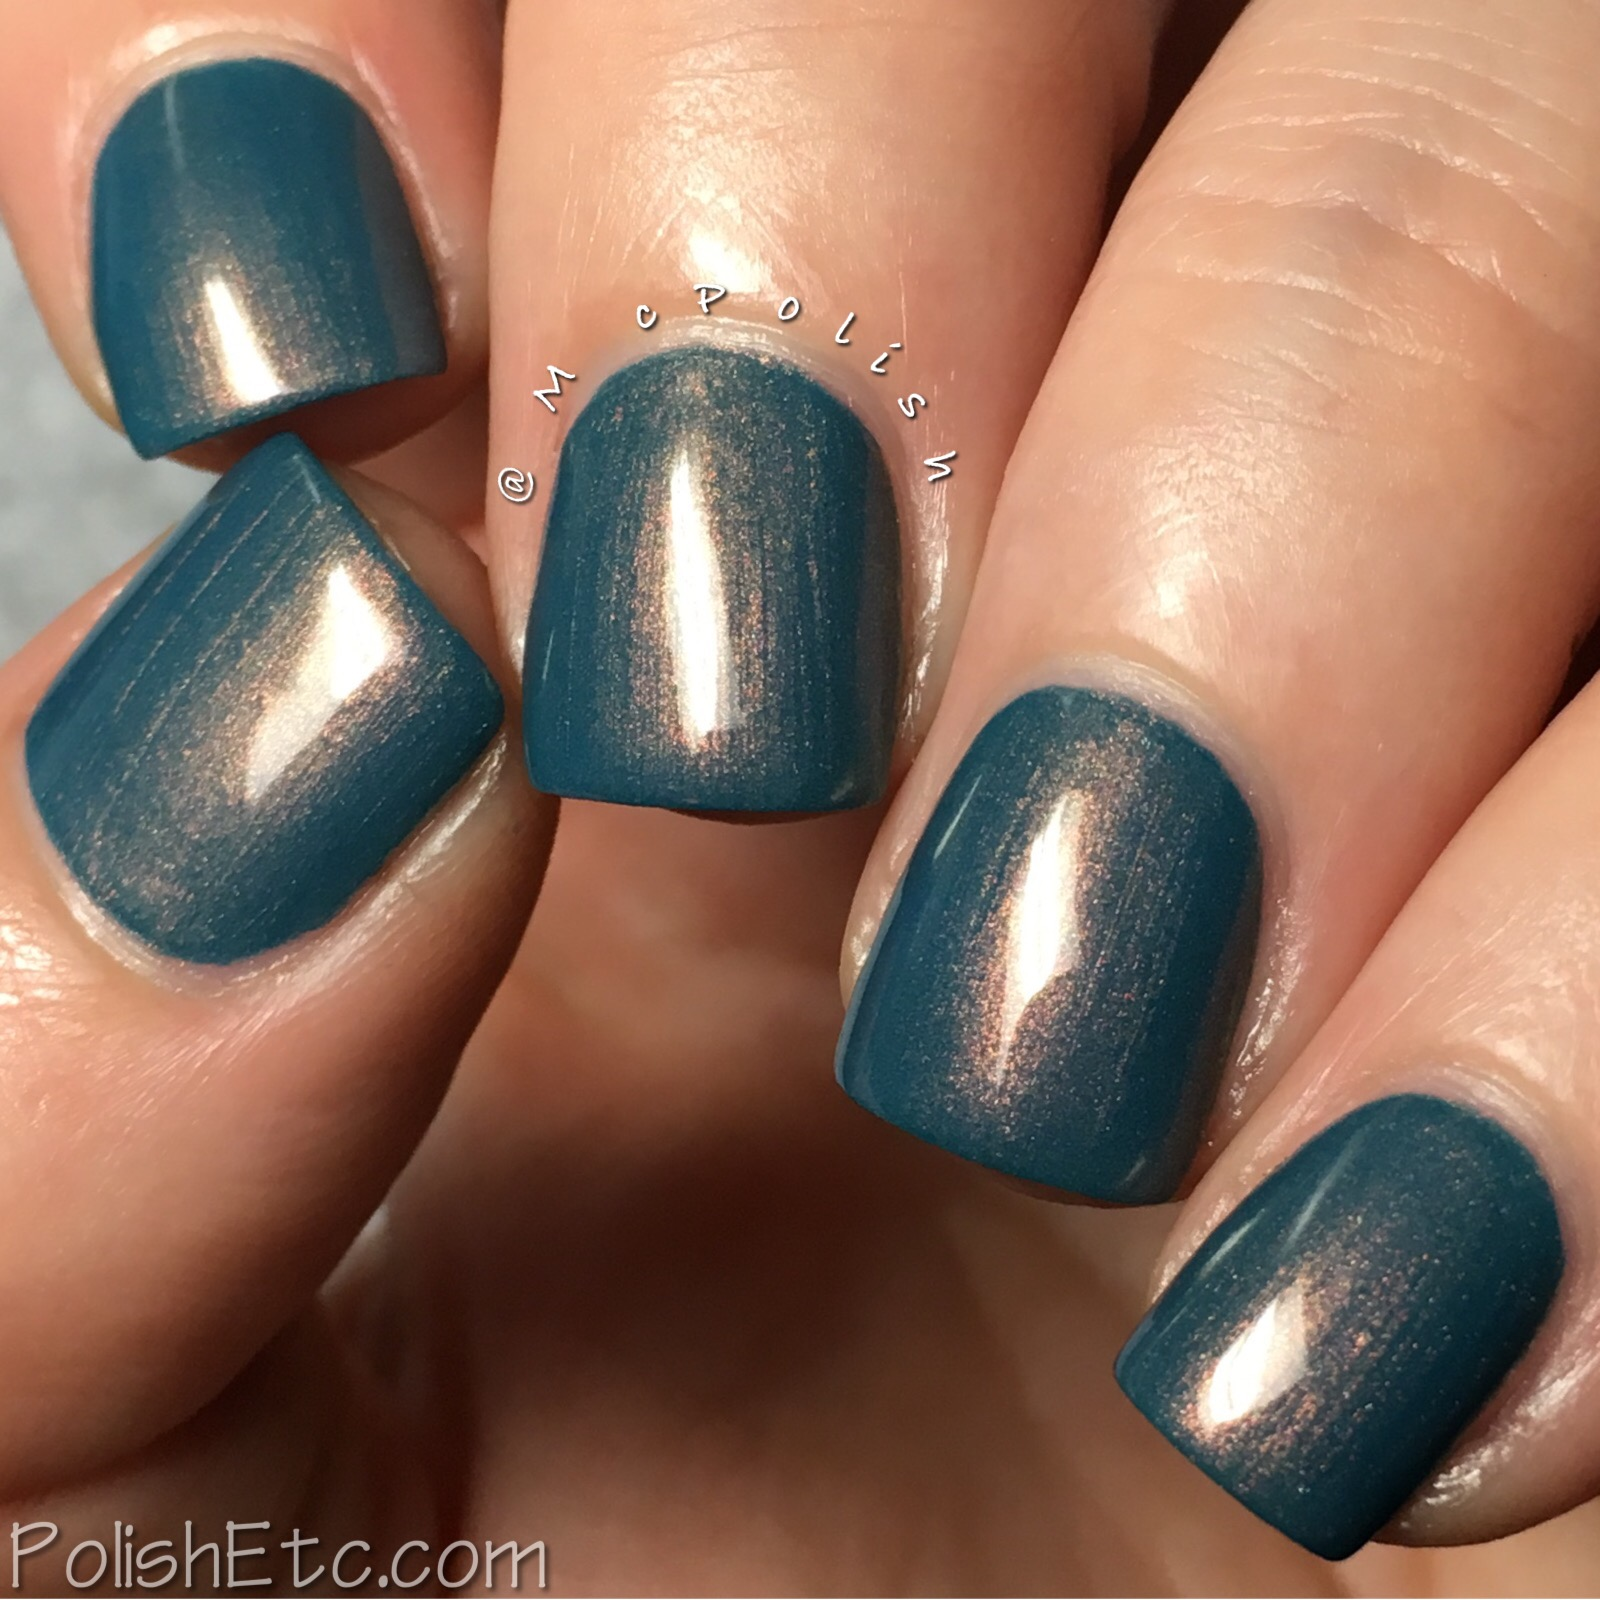 Native War Paints - Copper Beach Trio - McPolish - Crashing Waves